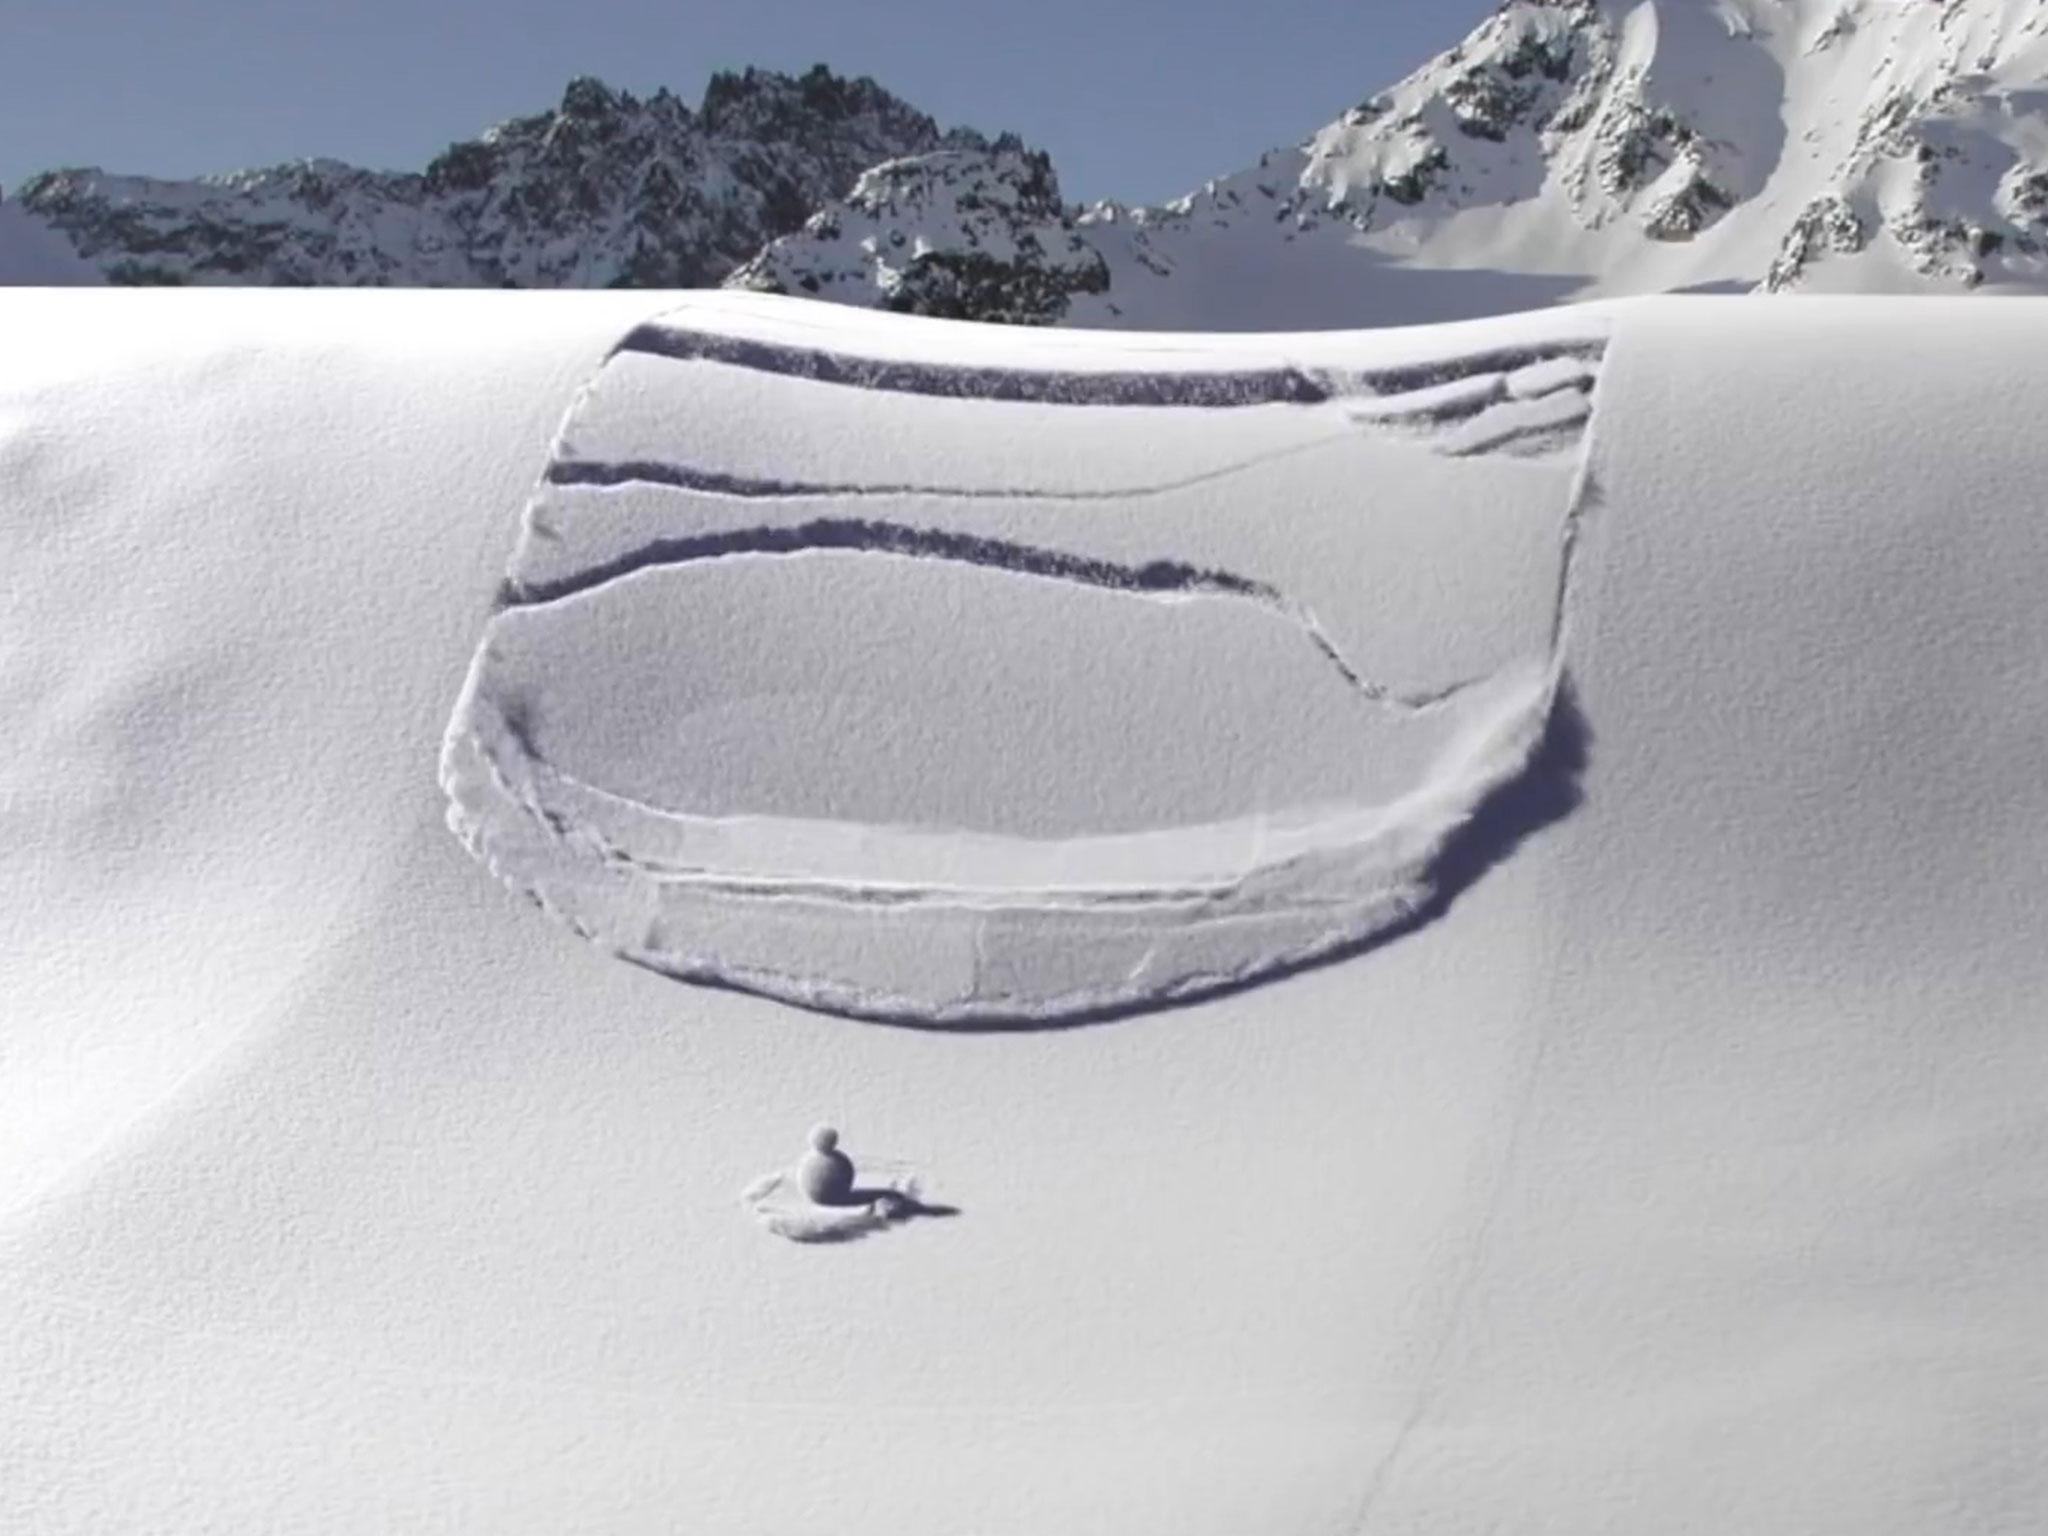 3D animation shows what happens when an avalanche strikes | The Independent